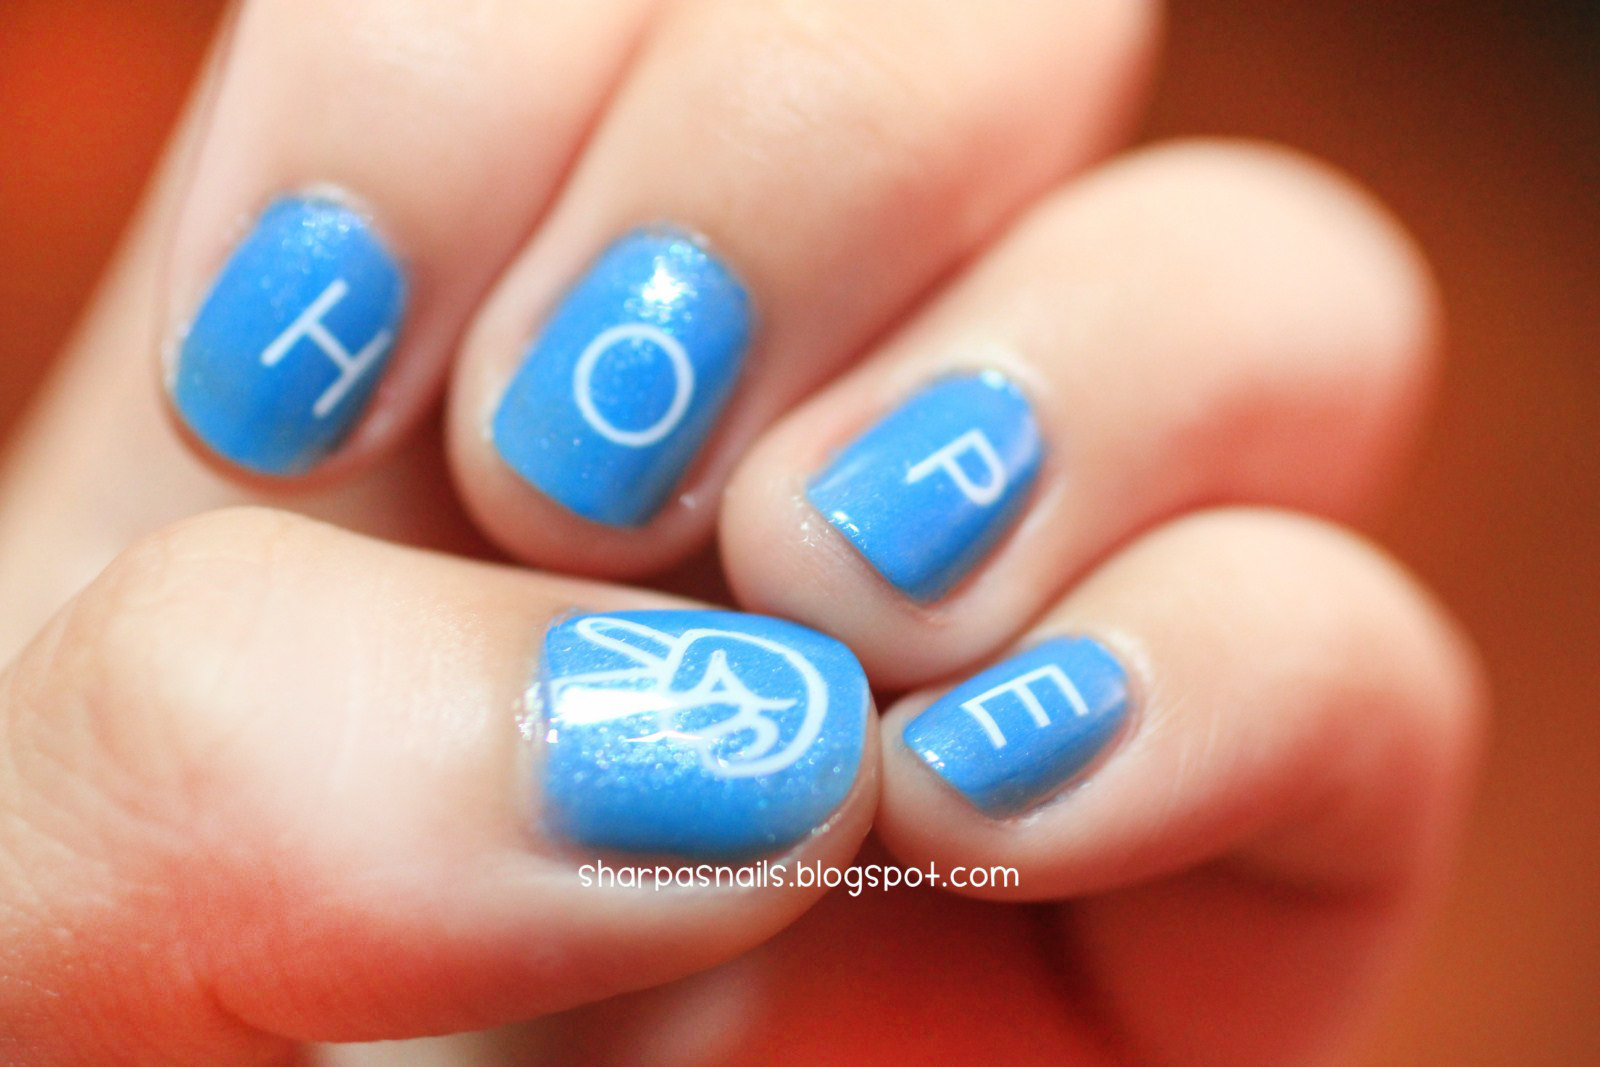 Sharp as nails a nail art blog 911 tribute nail art stamp away and it will turn out like this lastly put a top coat for a shiny protective finish prinsesfo Choice Image